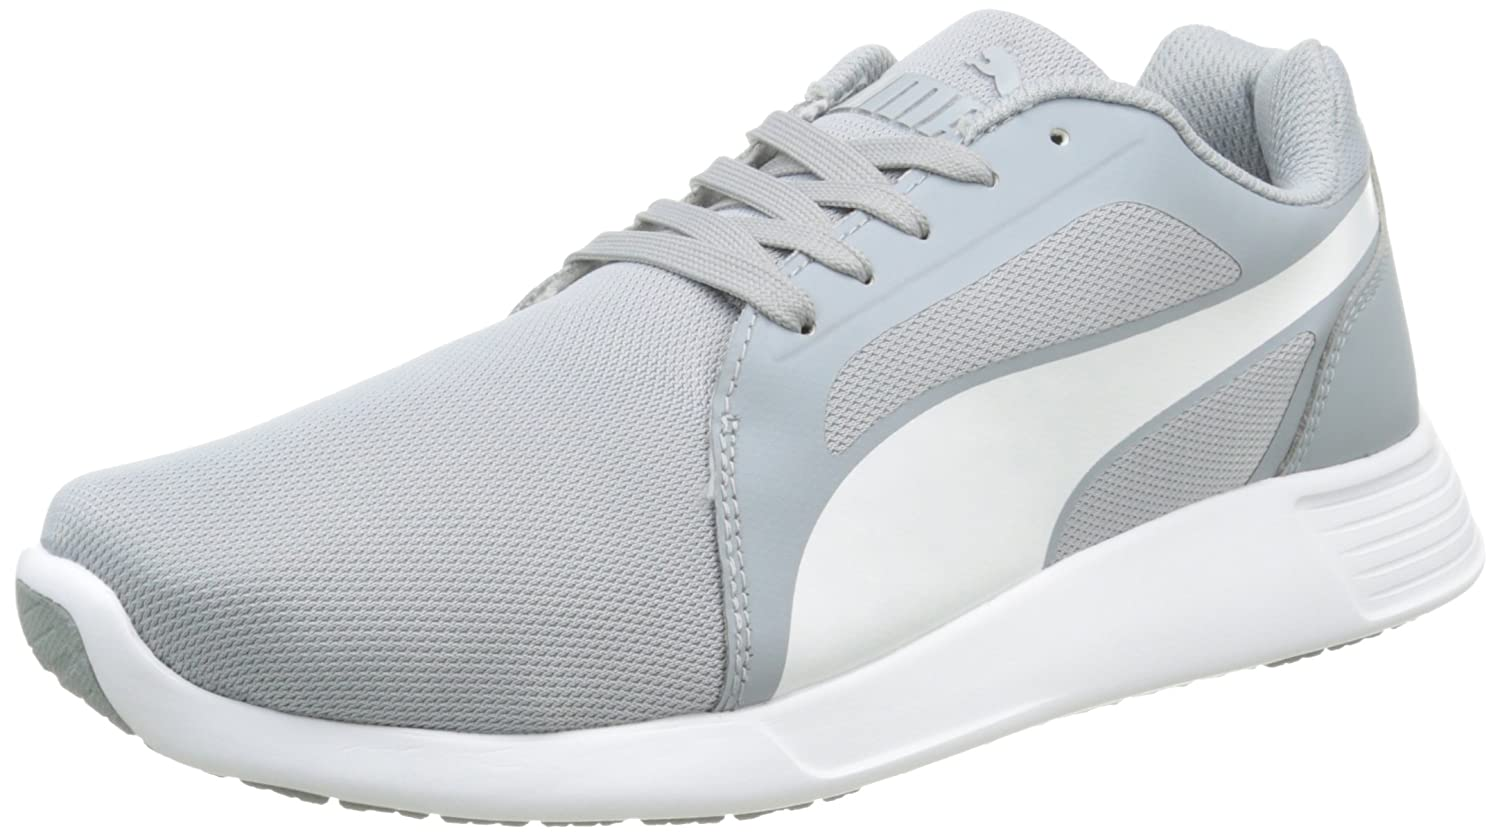 Puma Men's STTrainerEvo Sneakers (70% off) @ Amazon.in – Fashion & Apparels